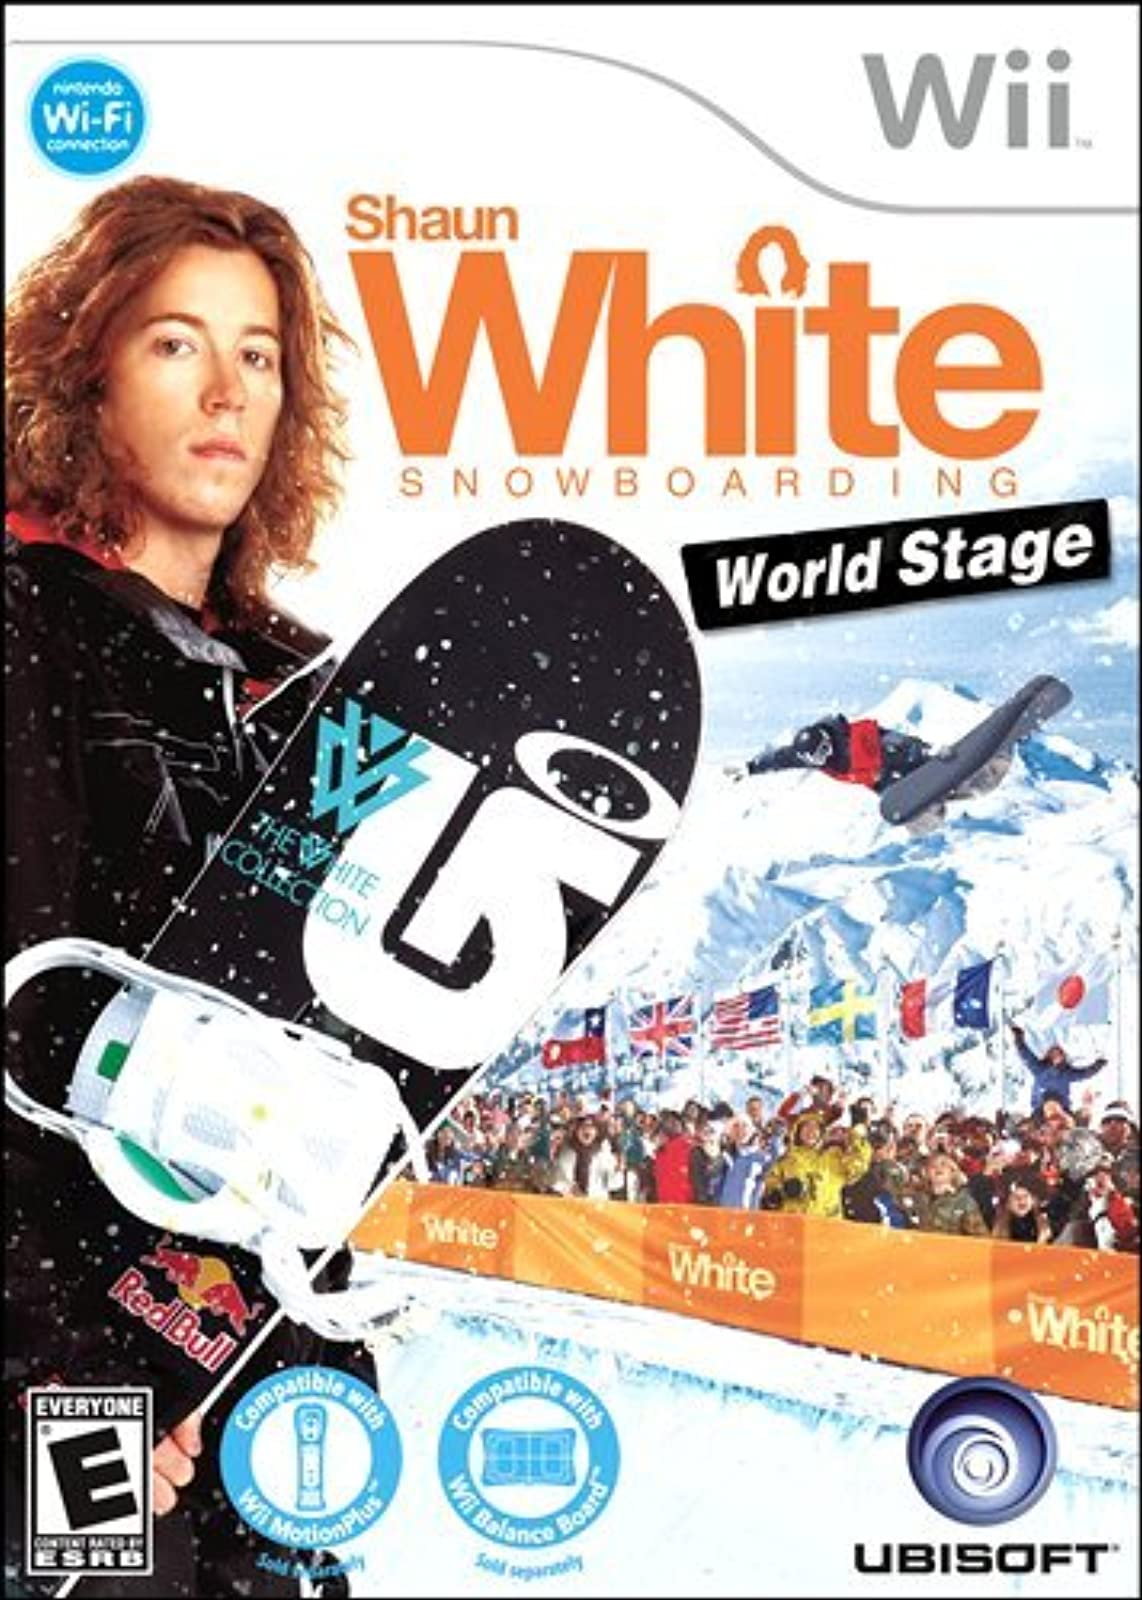 Shaun White Snowboarding: World Stage For Wii And Wii U